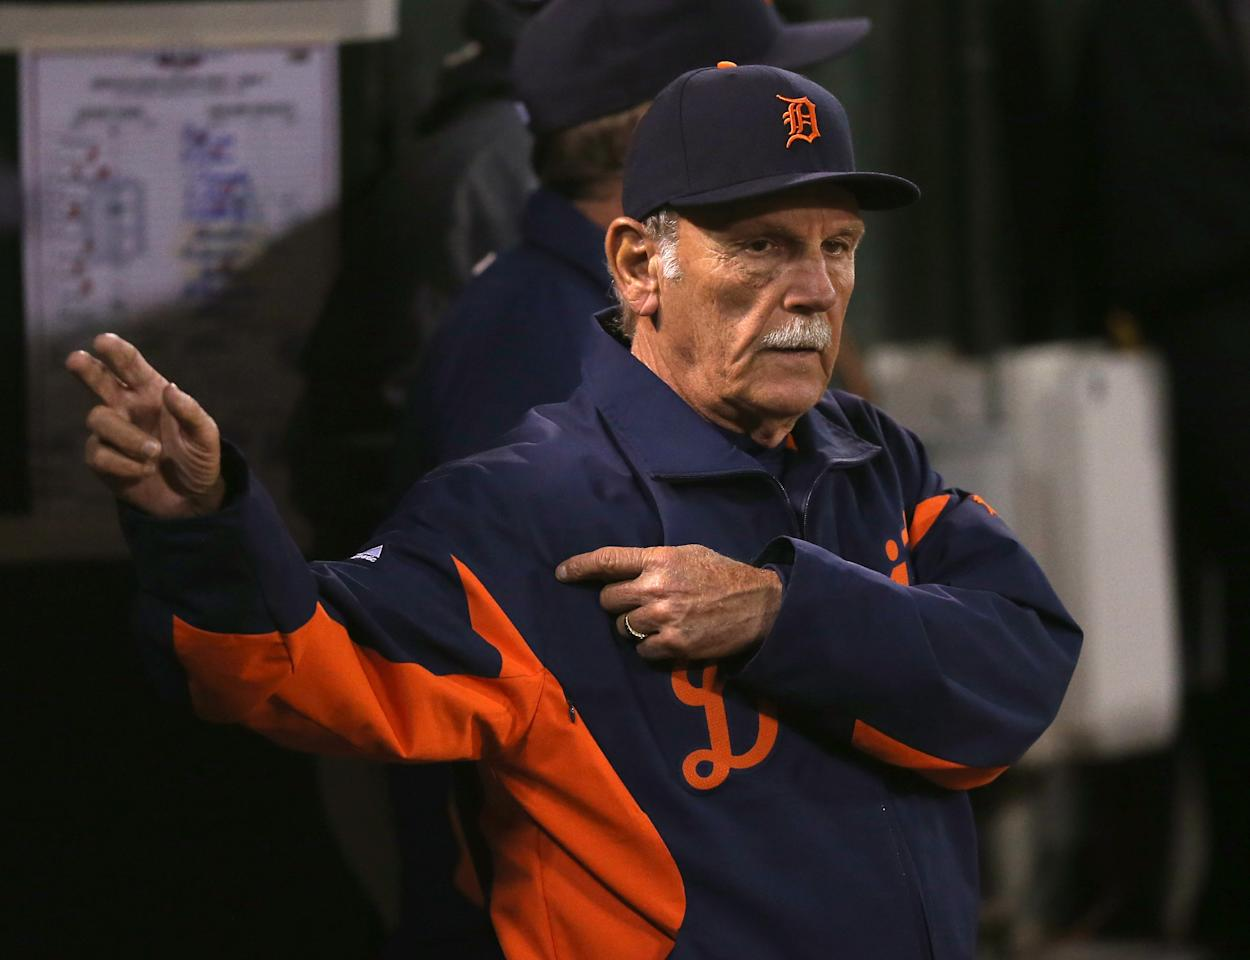 OAKLAND, CA - OCTOBER 09: Manager Jim Leyland #10 of the Detroit Tigers gestures for a relief pitcher in the seventh inning against the Oakland Athletics during Game Three of the American League Division Series at Oakland-Alameda County Coliseum on October 9, 2012 in Oakland, California.  (Photo by Ezra Shaw/Getty Images)